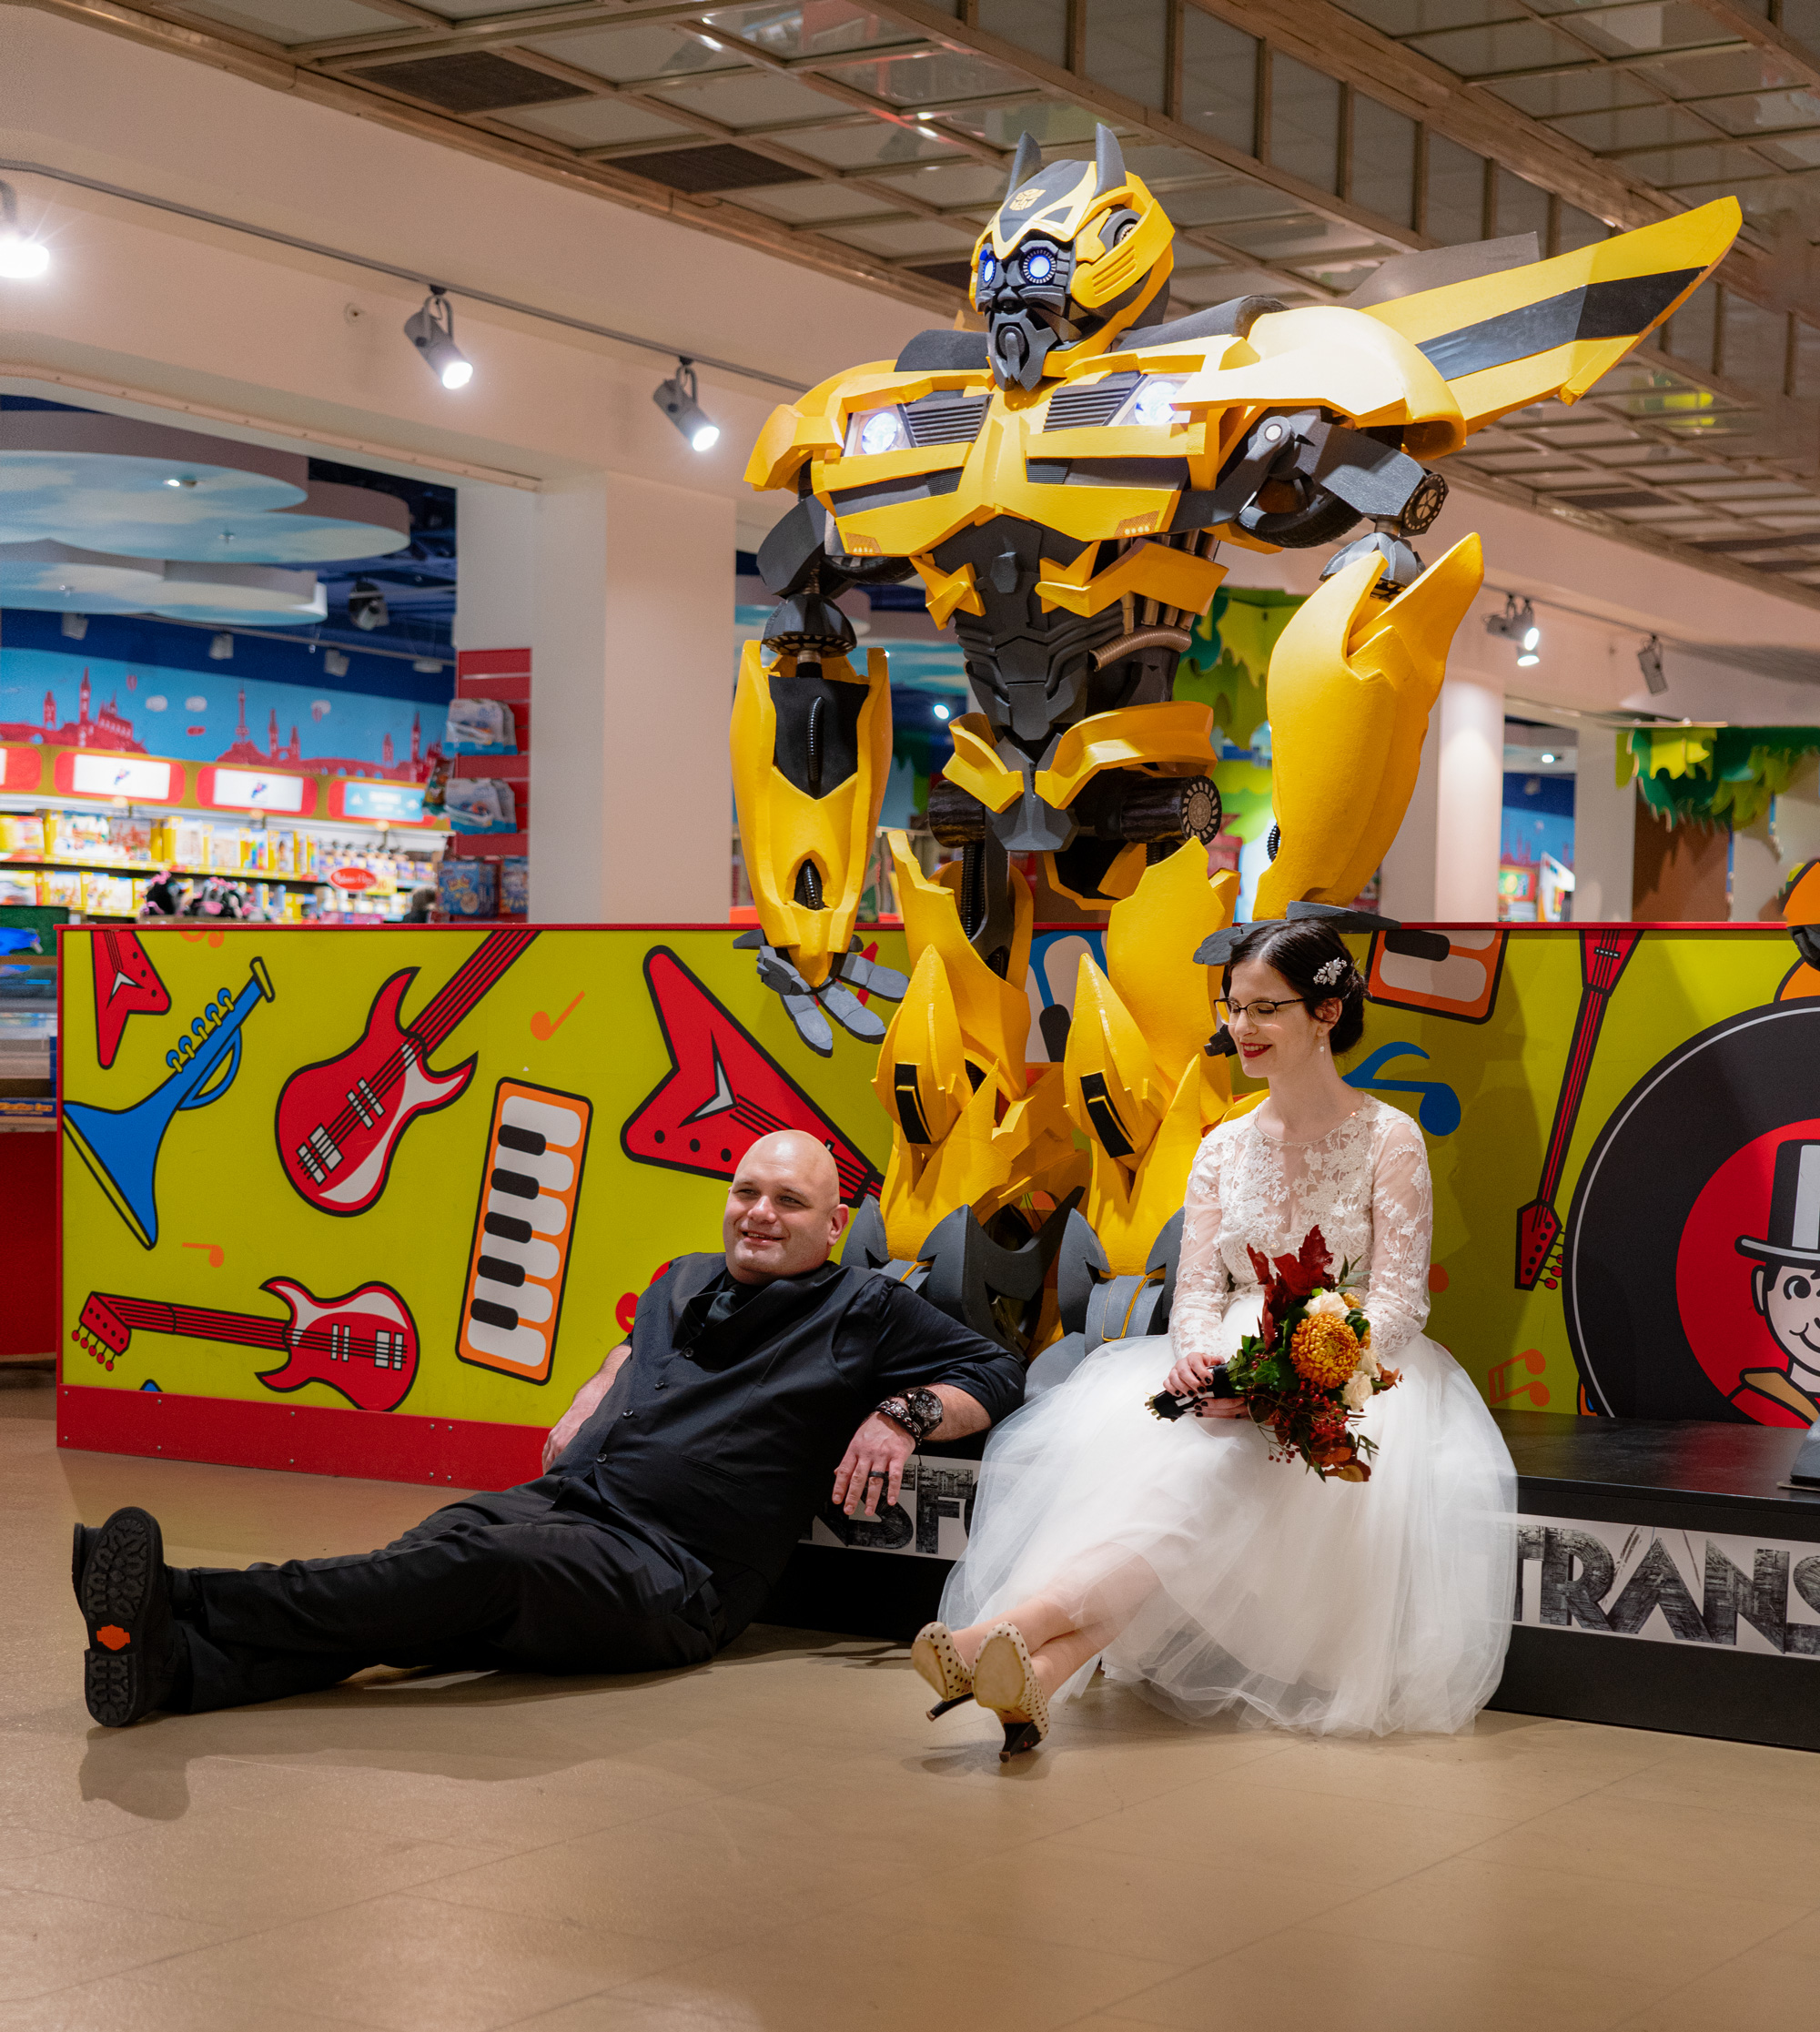 Transformer's Bumblebee at toy store with bride and groom